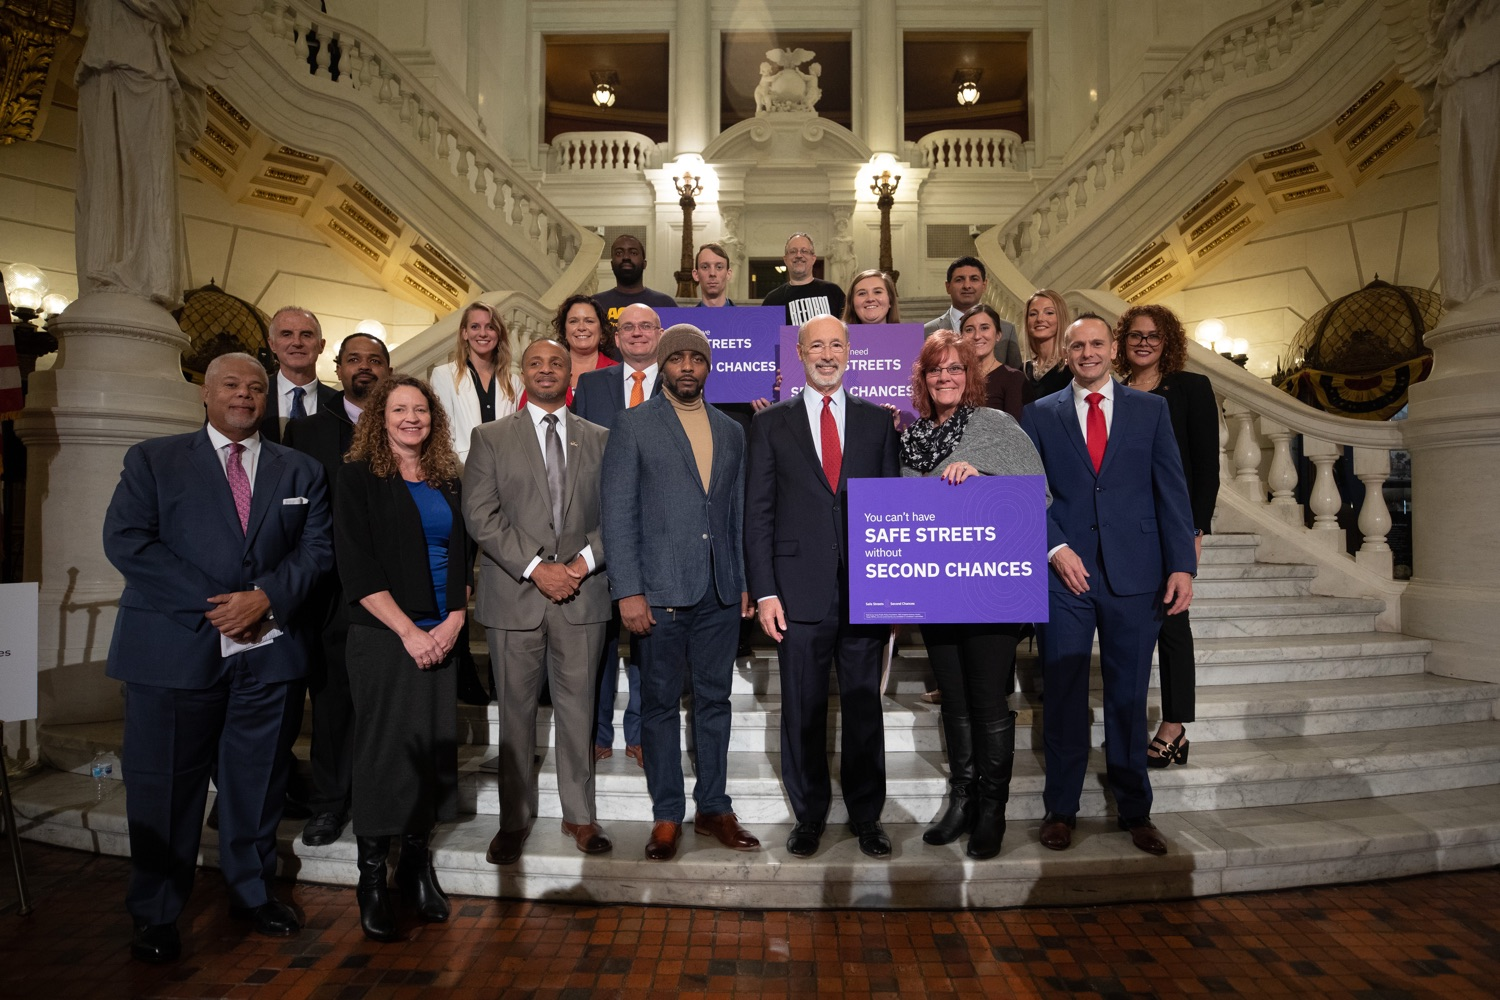 """<a href=""""http://filesource.abacast.com/commonwealthofpa/photo/17601_gov_right_on_crime_dz_022.jpg"""" target=""""_blank"""">⇣Download Photo<br></a>Governor Tom Wolf posing for photos after at the event. Governor Tom Wolf was joined by Deputy Secretary of Corrections Christian Stephens and national criminal justice reform advocates today in the Capitol Rotunda to push for commonsense probation reforms that address probation sentences and probation lengths.  Harrisburg, PA  November 18, 2019"""